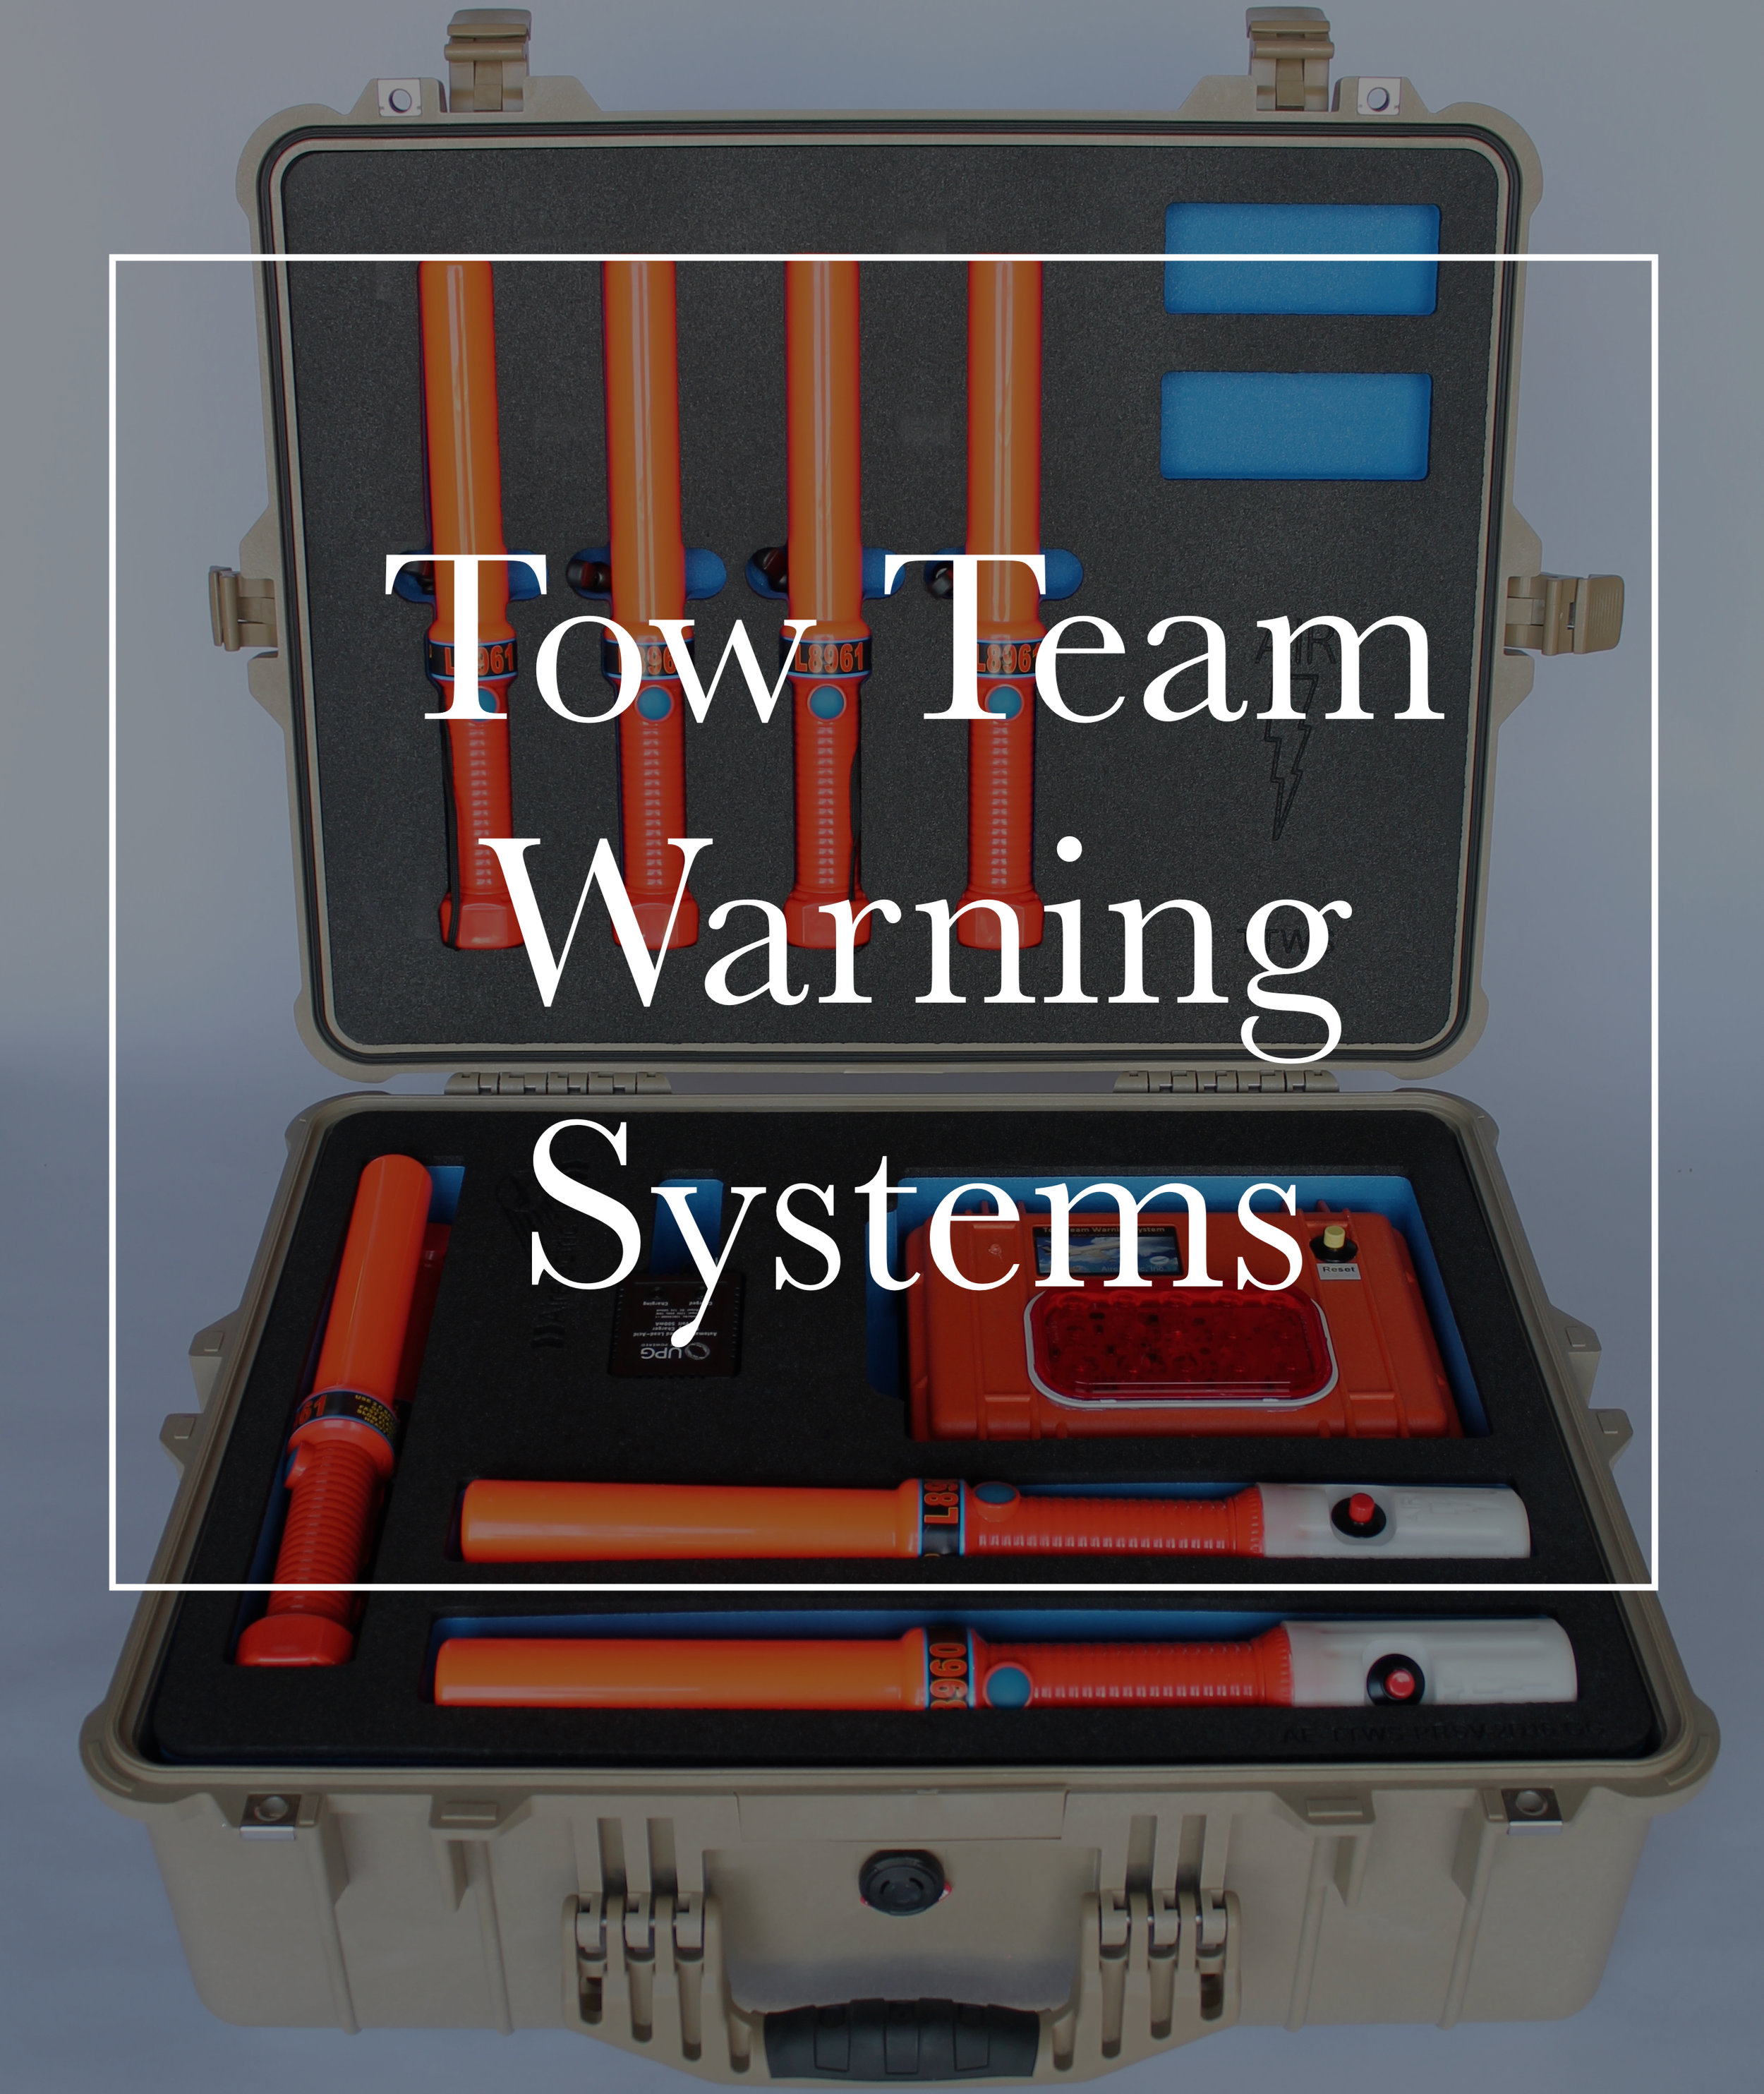 Tow Team Warning System - The Tow Team Warning System® makes it easy to protect your investments and your reputation while moving valuable aircraft and equipment safely and without damage.Click to learn how you can put this system to work in your everyday movement of aircraft!